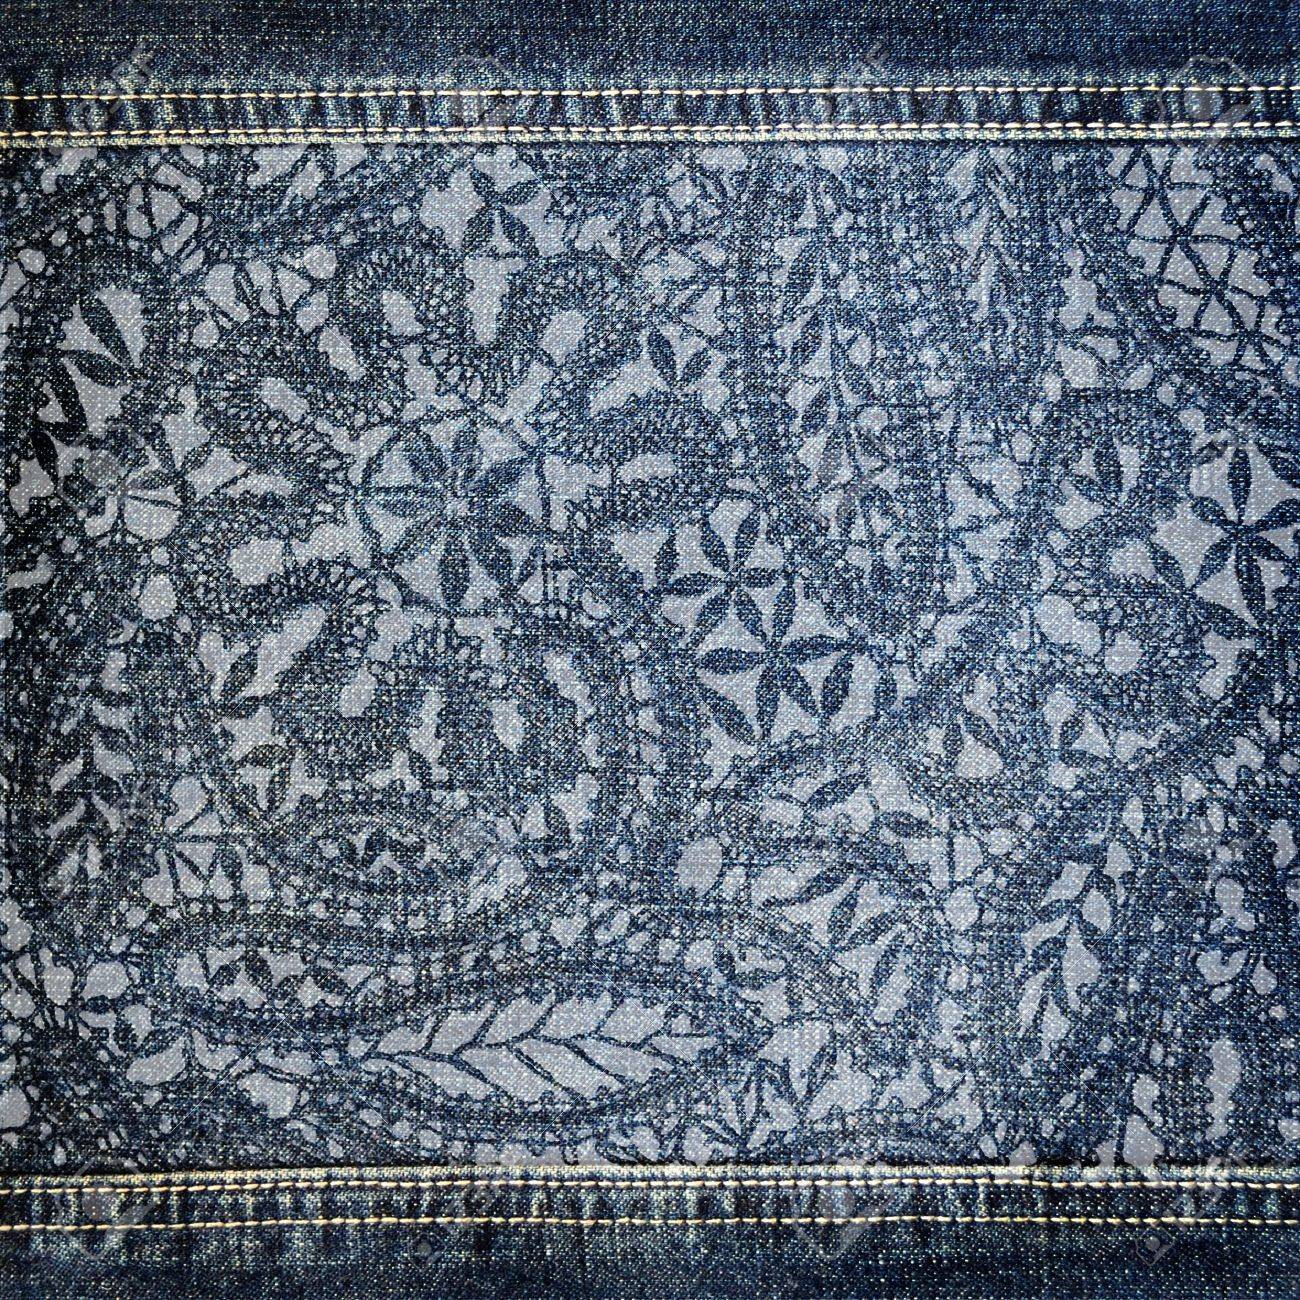 Background denim texture with lace pattern - 17933906